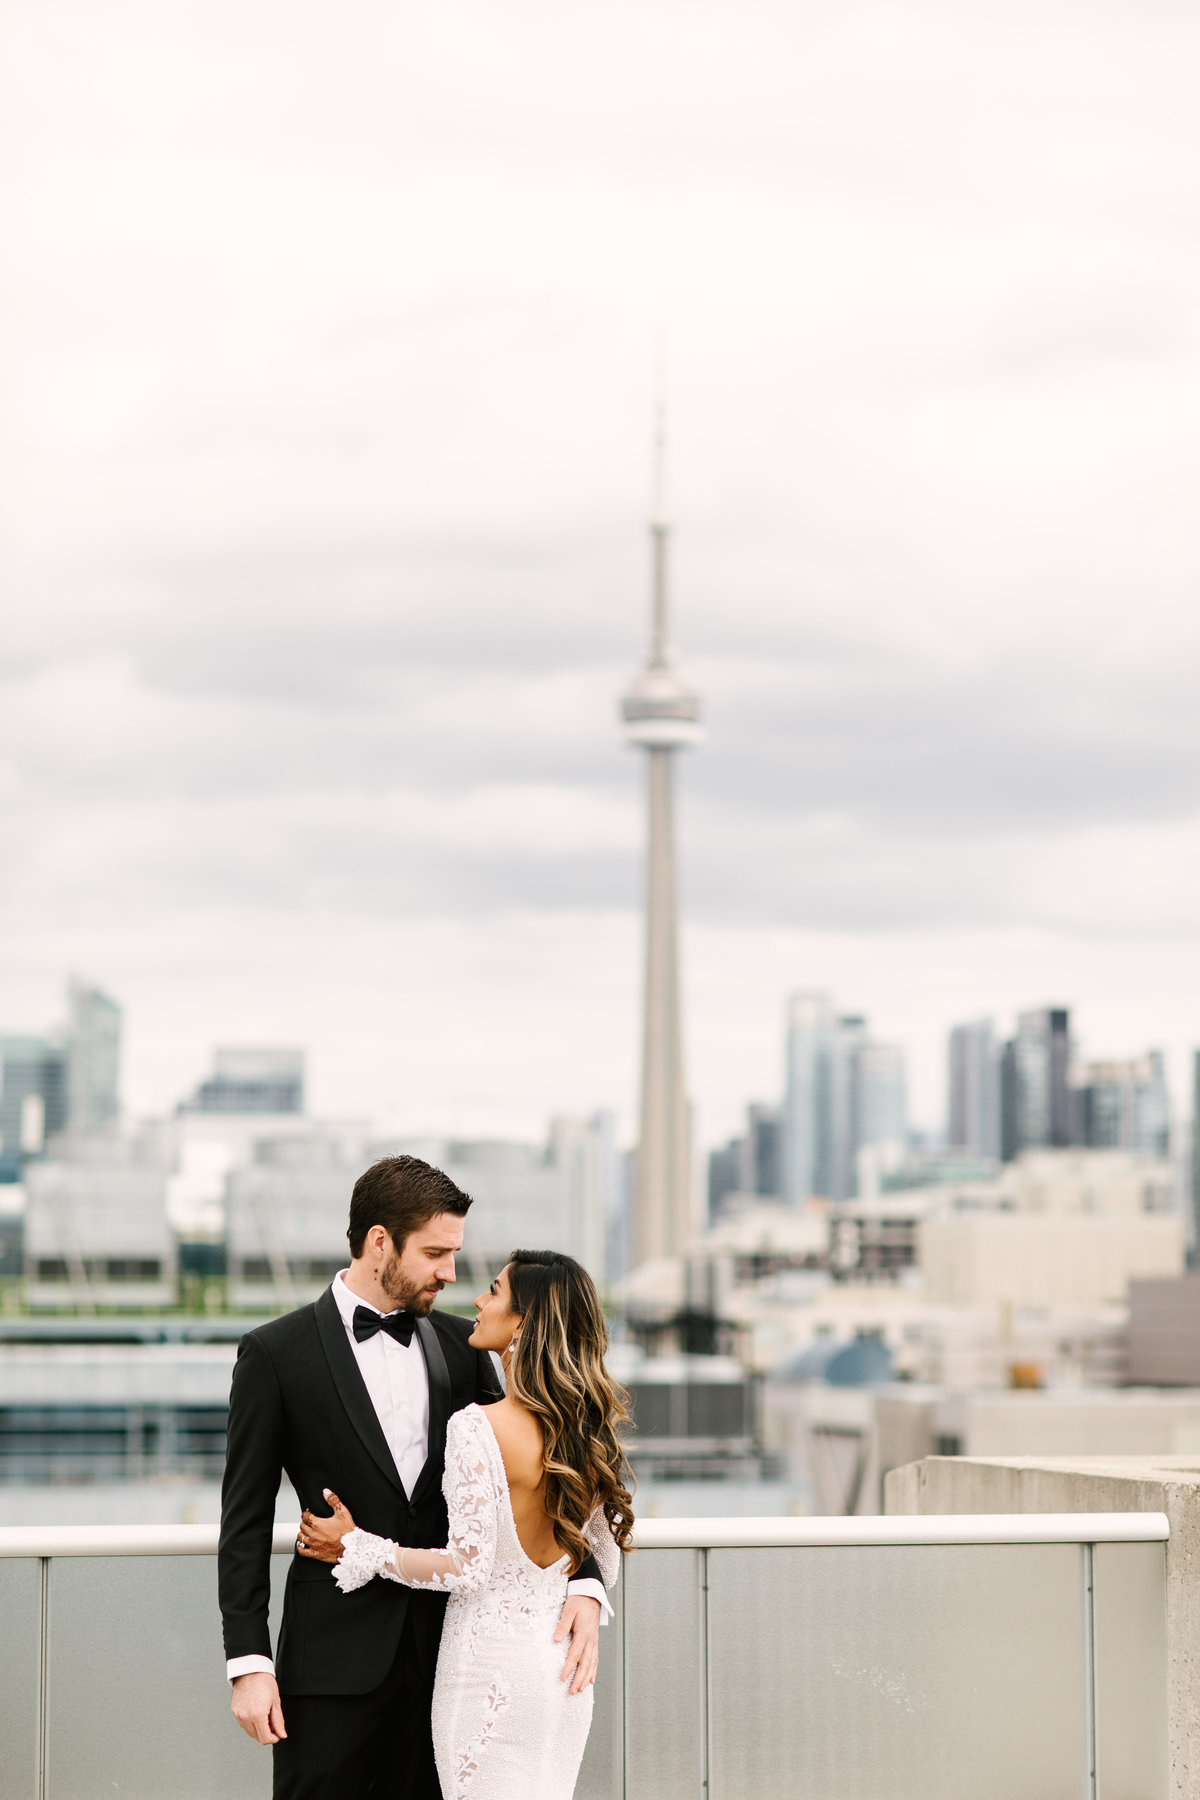 LINDSIEGREY_JASPREET_CHRIS_WEDDING_1637